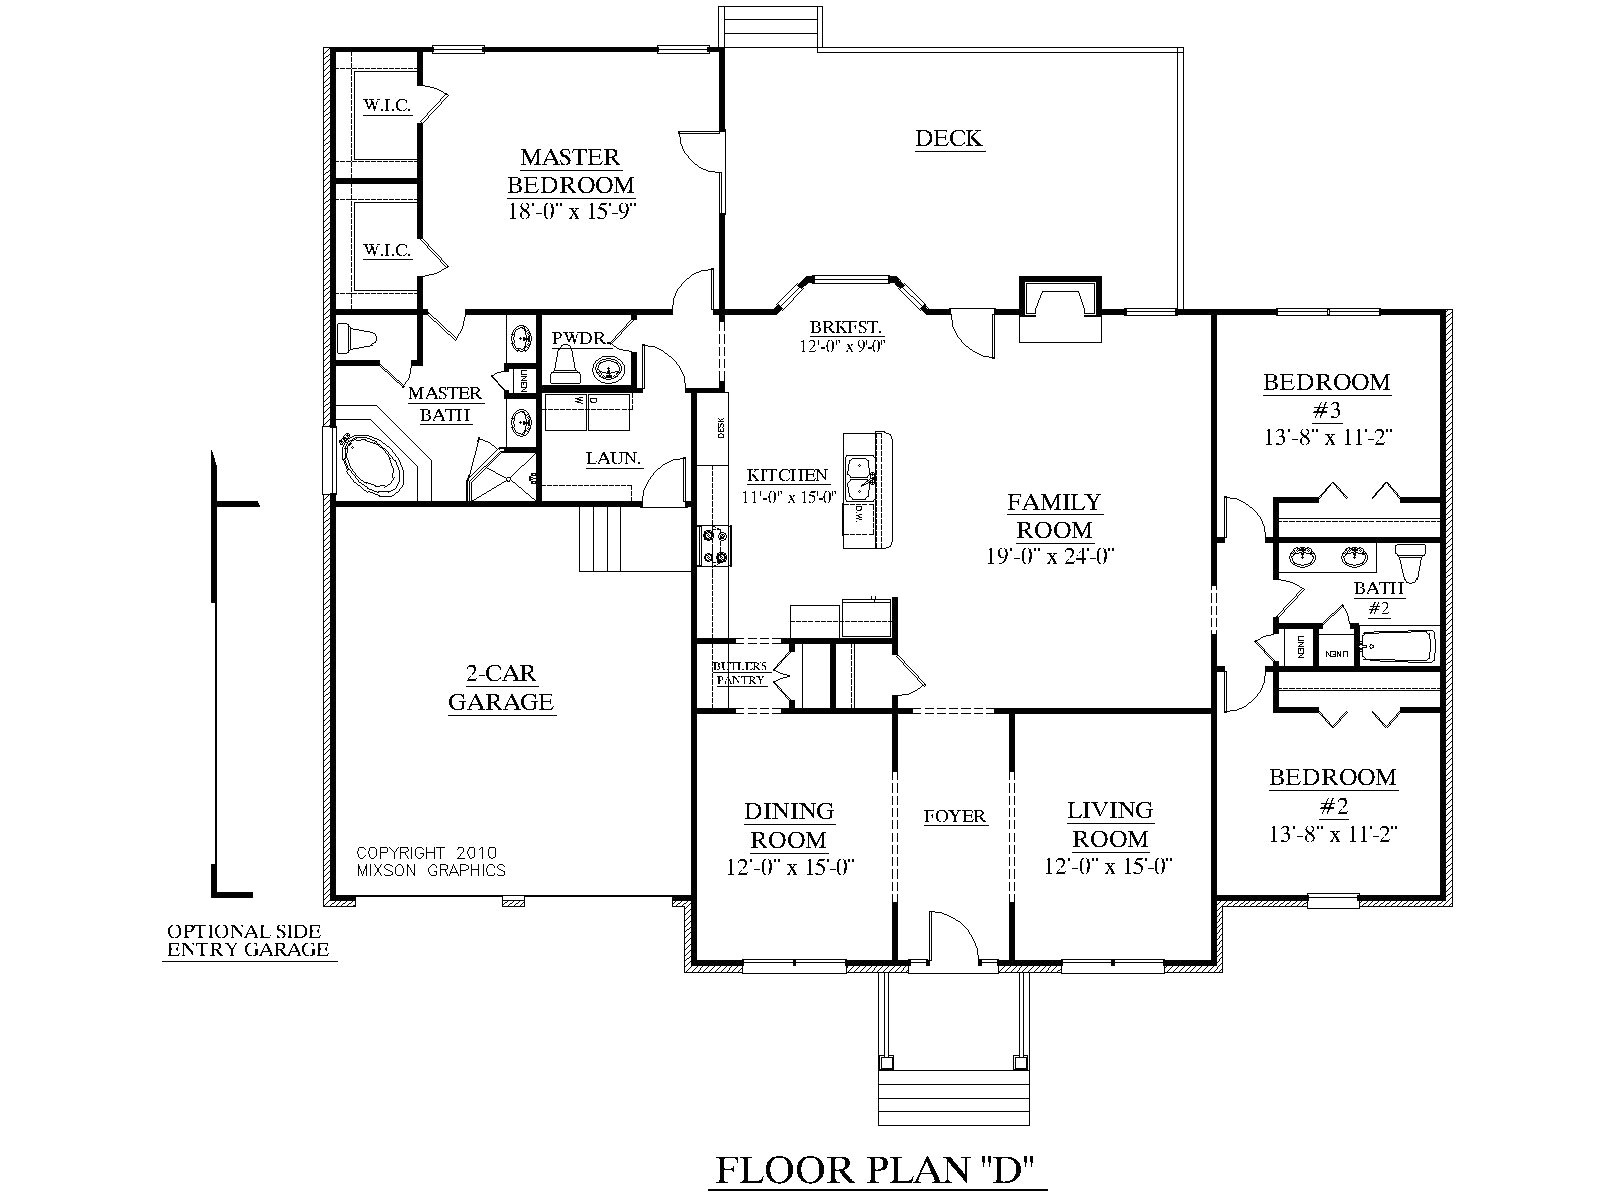 3000 Square Feet Home Plans House Plans Over 3000 Square Feet